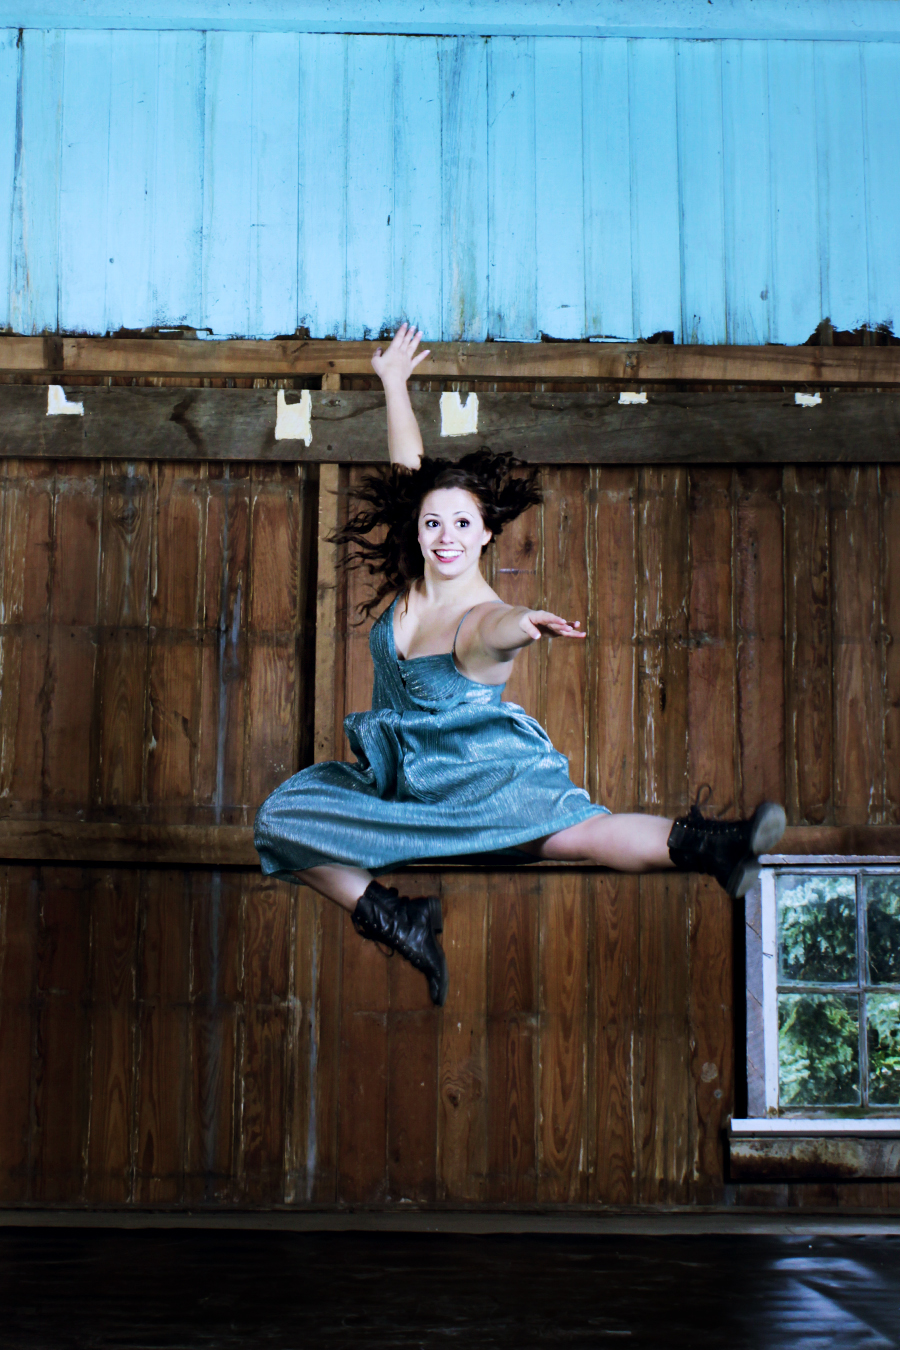 TMP's Megan Lee Gargano leaps in the company's barn space. Photo by Bryce Millikin.